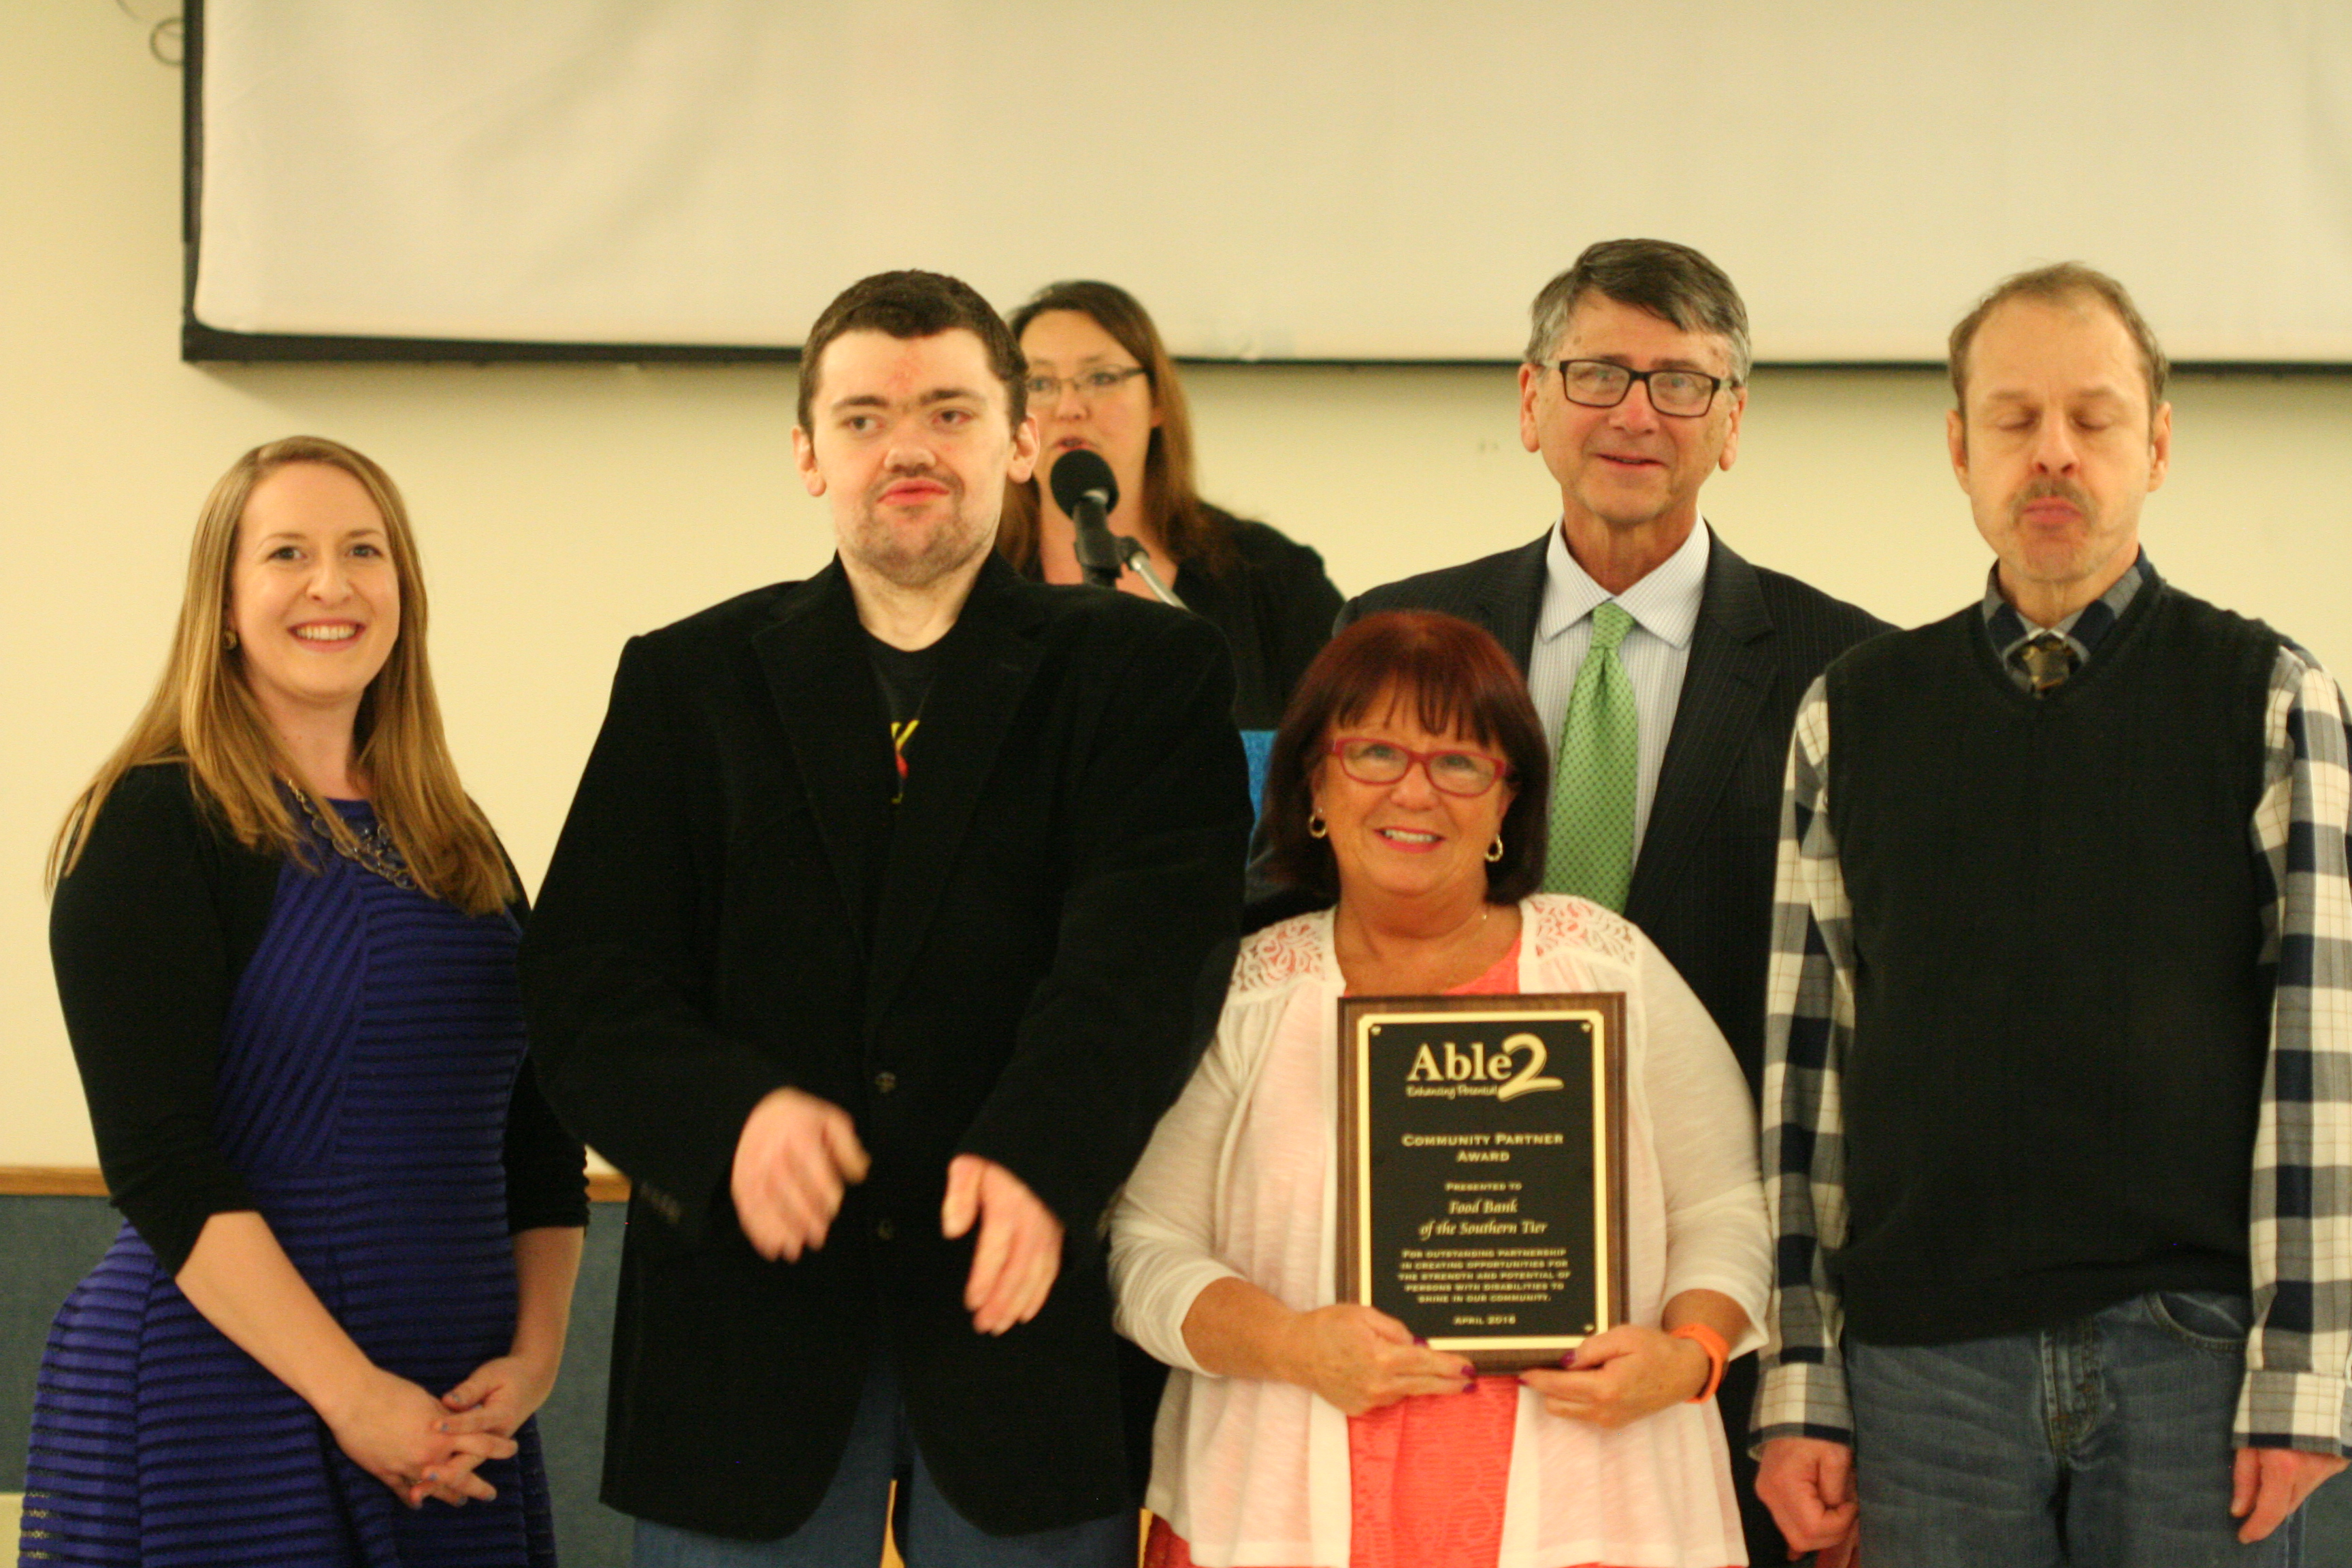 2016 Annual Board Meeting & Awards Banquet